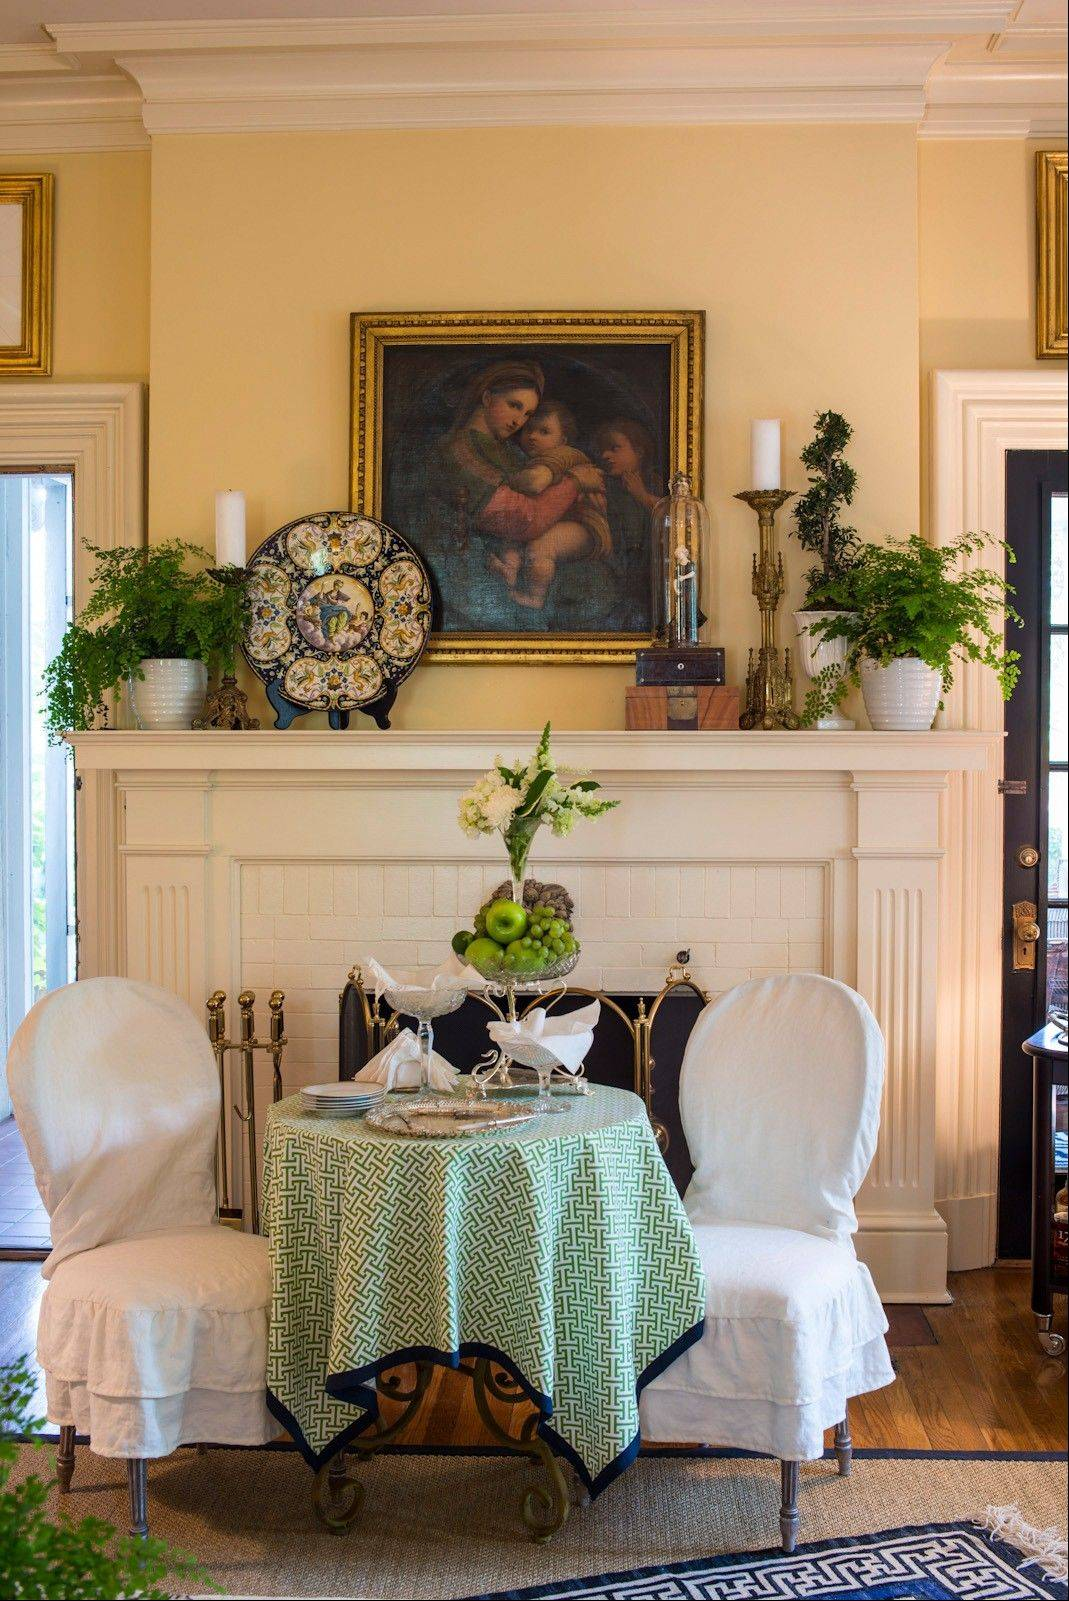 Hanging a bold piece of contemporary art over the fireplace mantel is one way to give this all-important spot a new look.